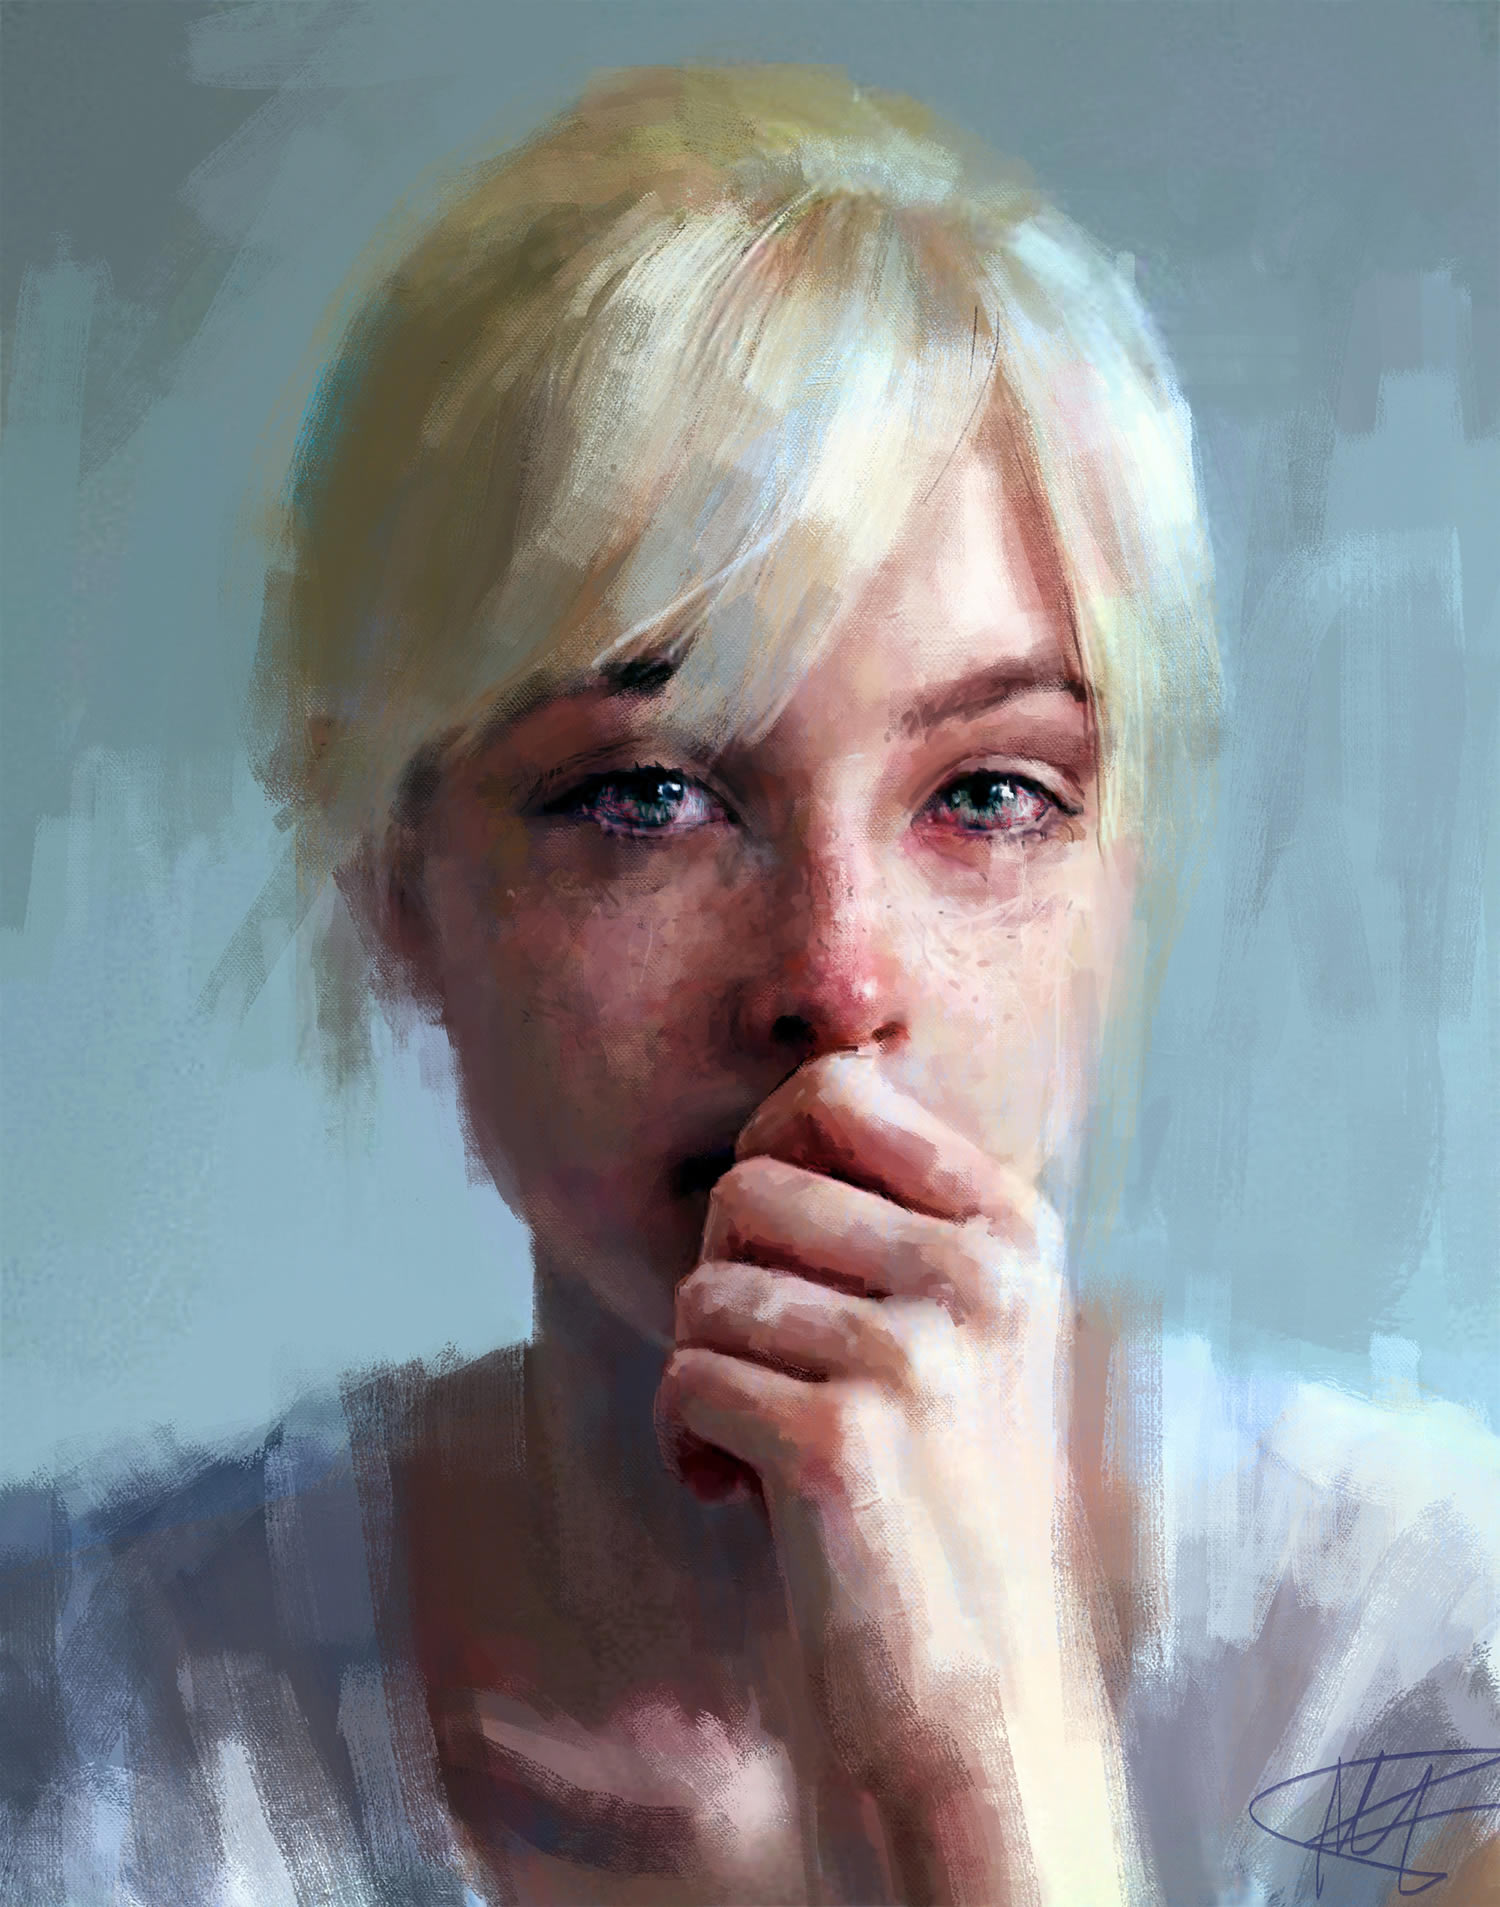 blonde woman crying, digital painting